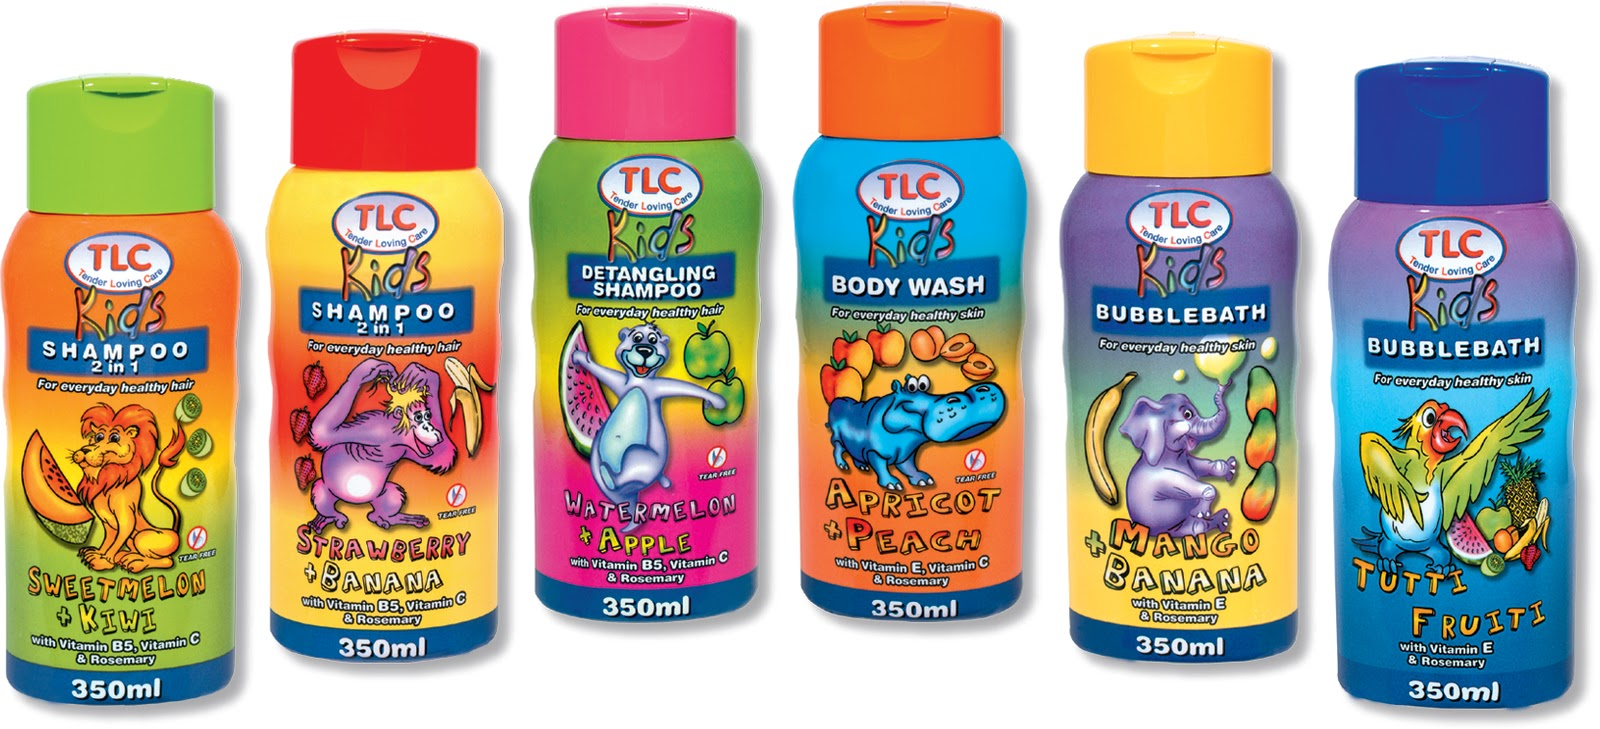 Bath Products : bath and shampoos for kids the tlc kids range has exciting products ...